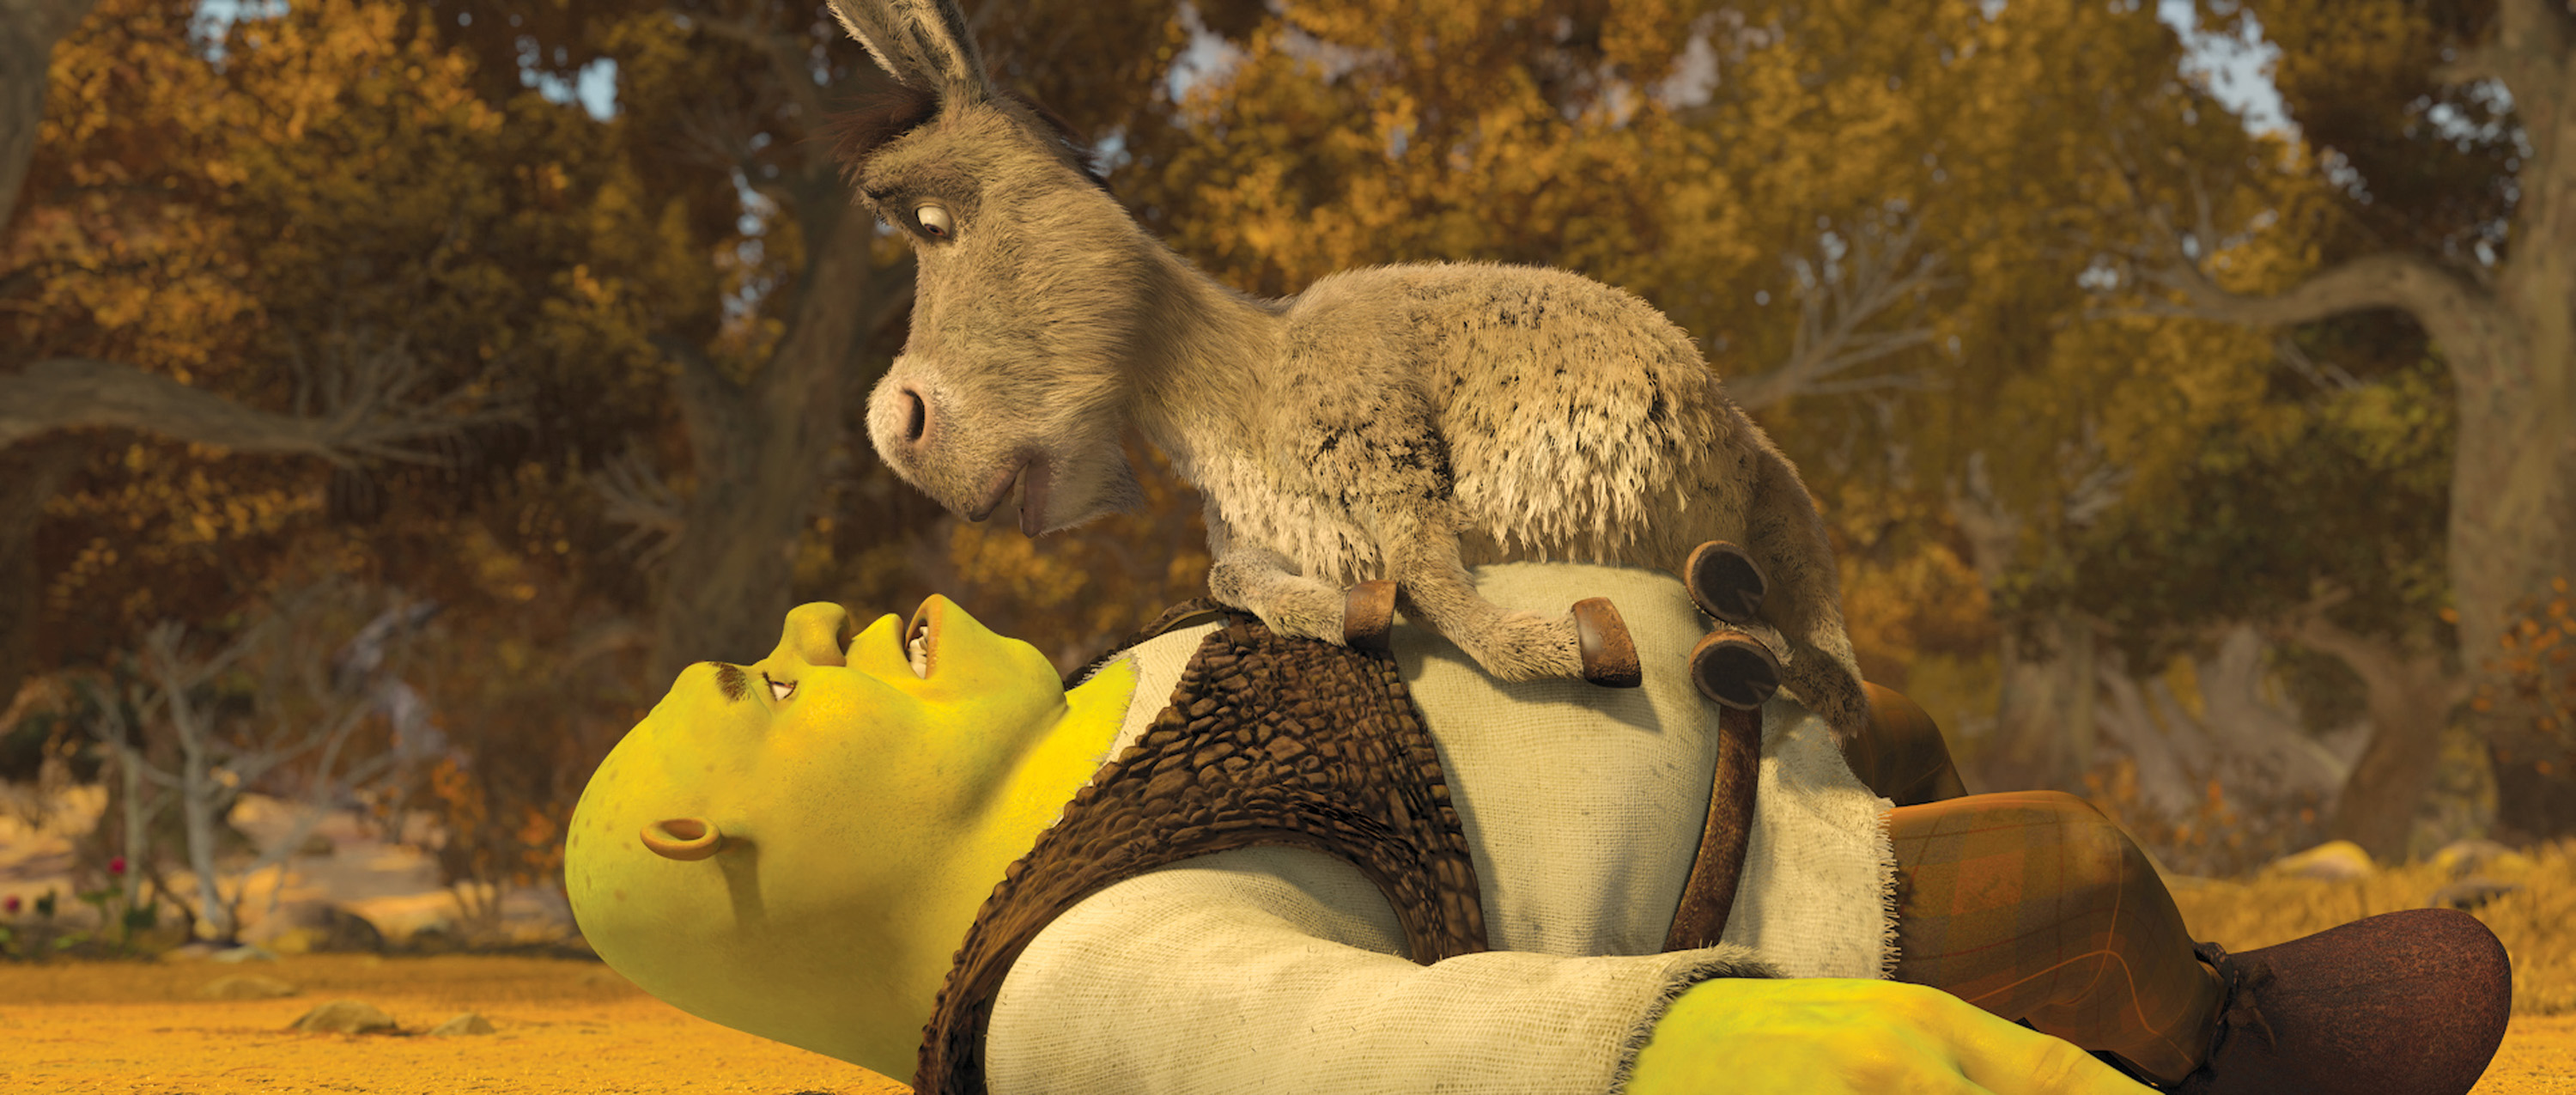 Shrek 5 gets new release date and cast for sequel